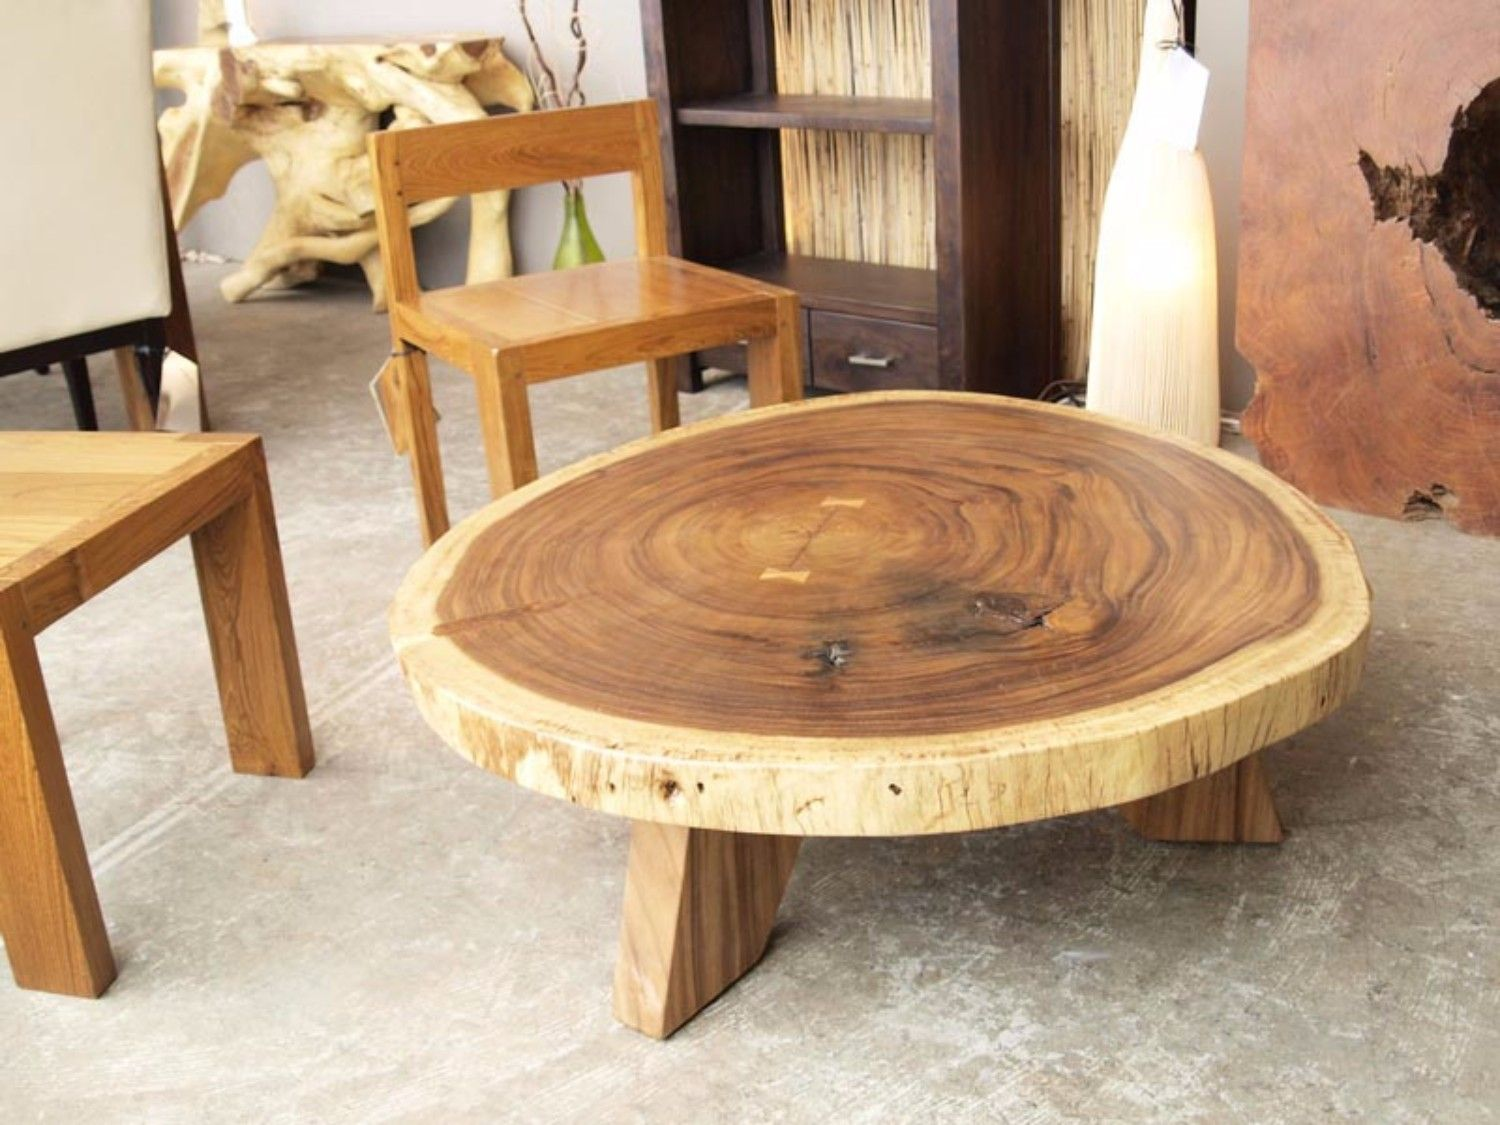 Trendy Materials Used In A Modern Coffee Table Circle Coffee